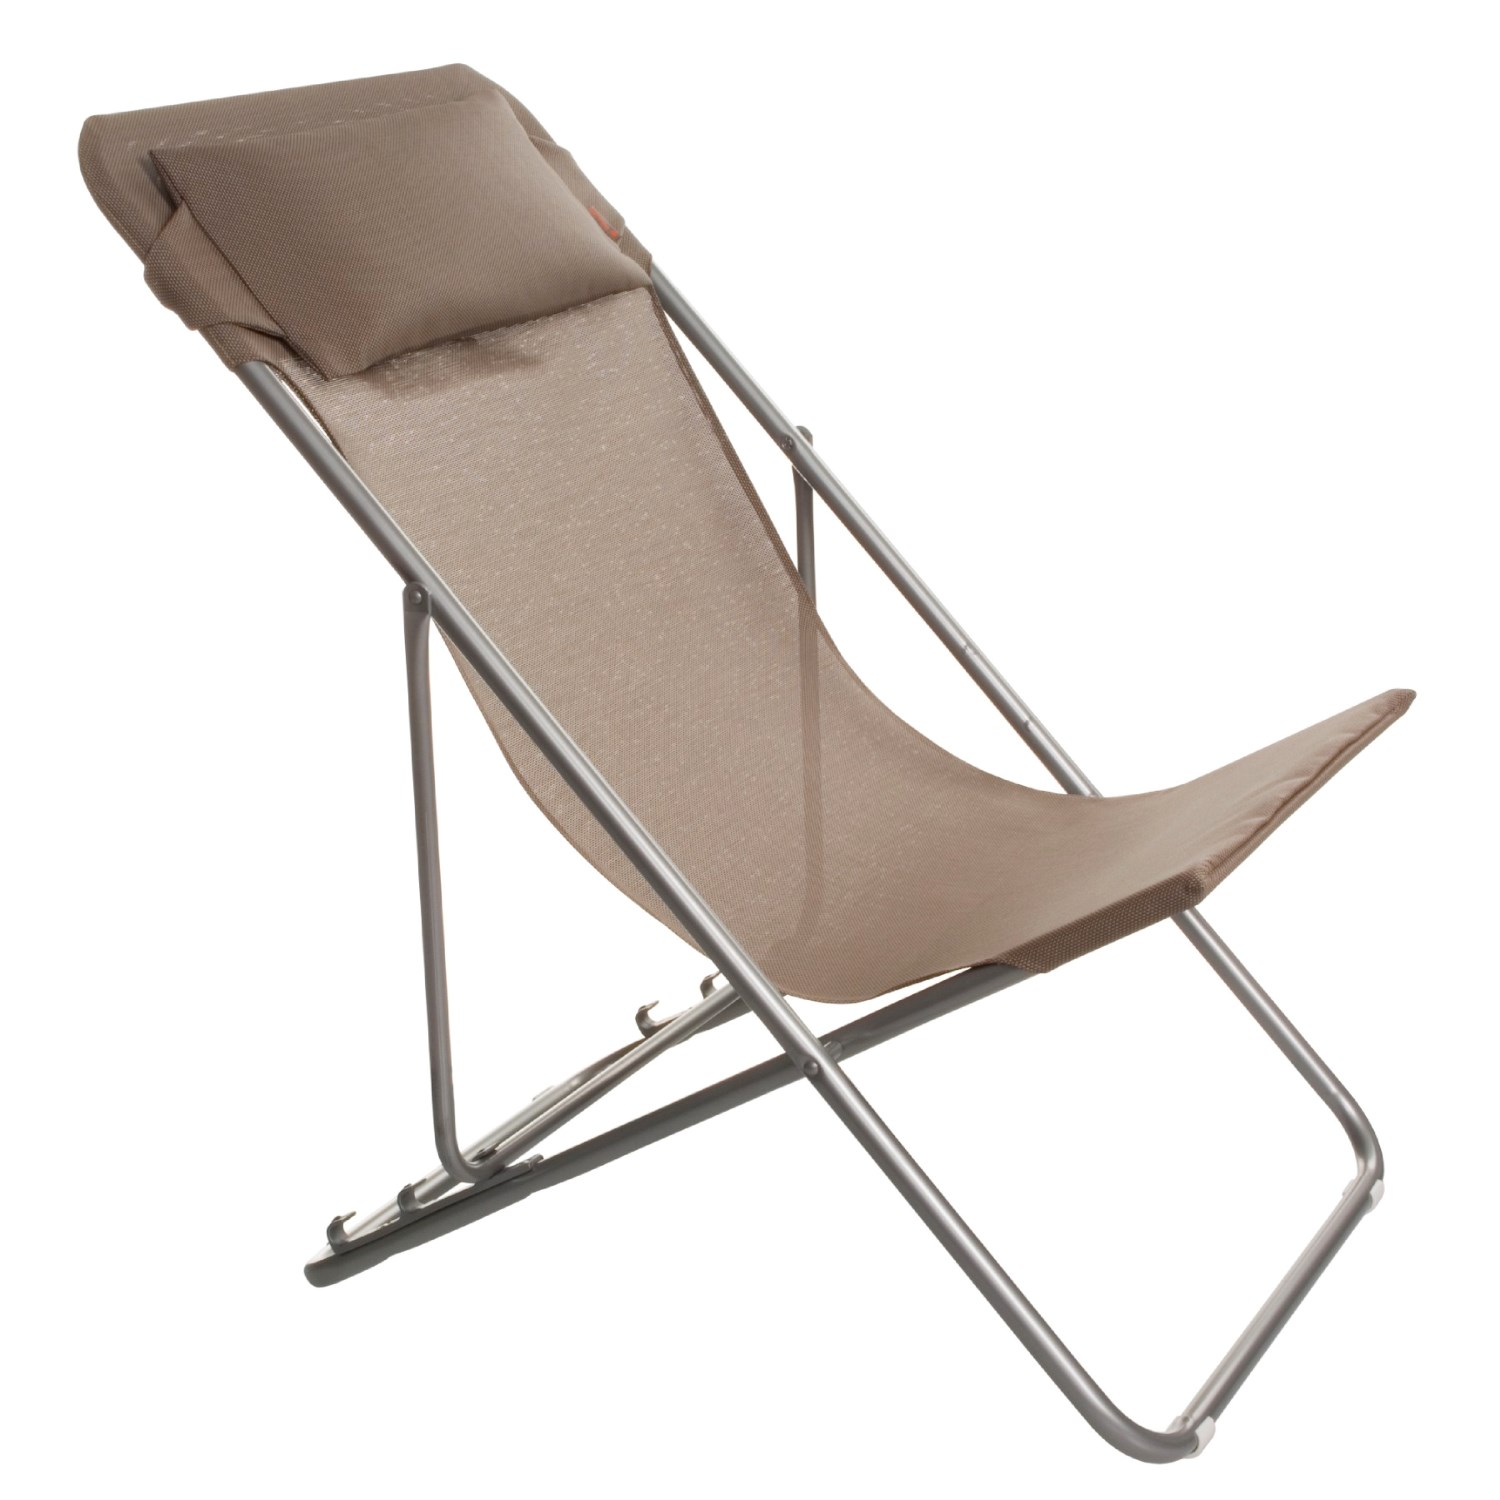 Lafuma transatube xl folding chair with headrest 1357d - Chaise pliante lafuma ...